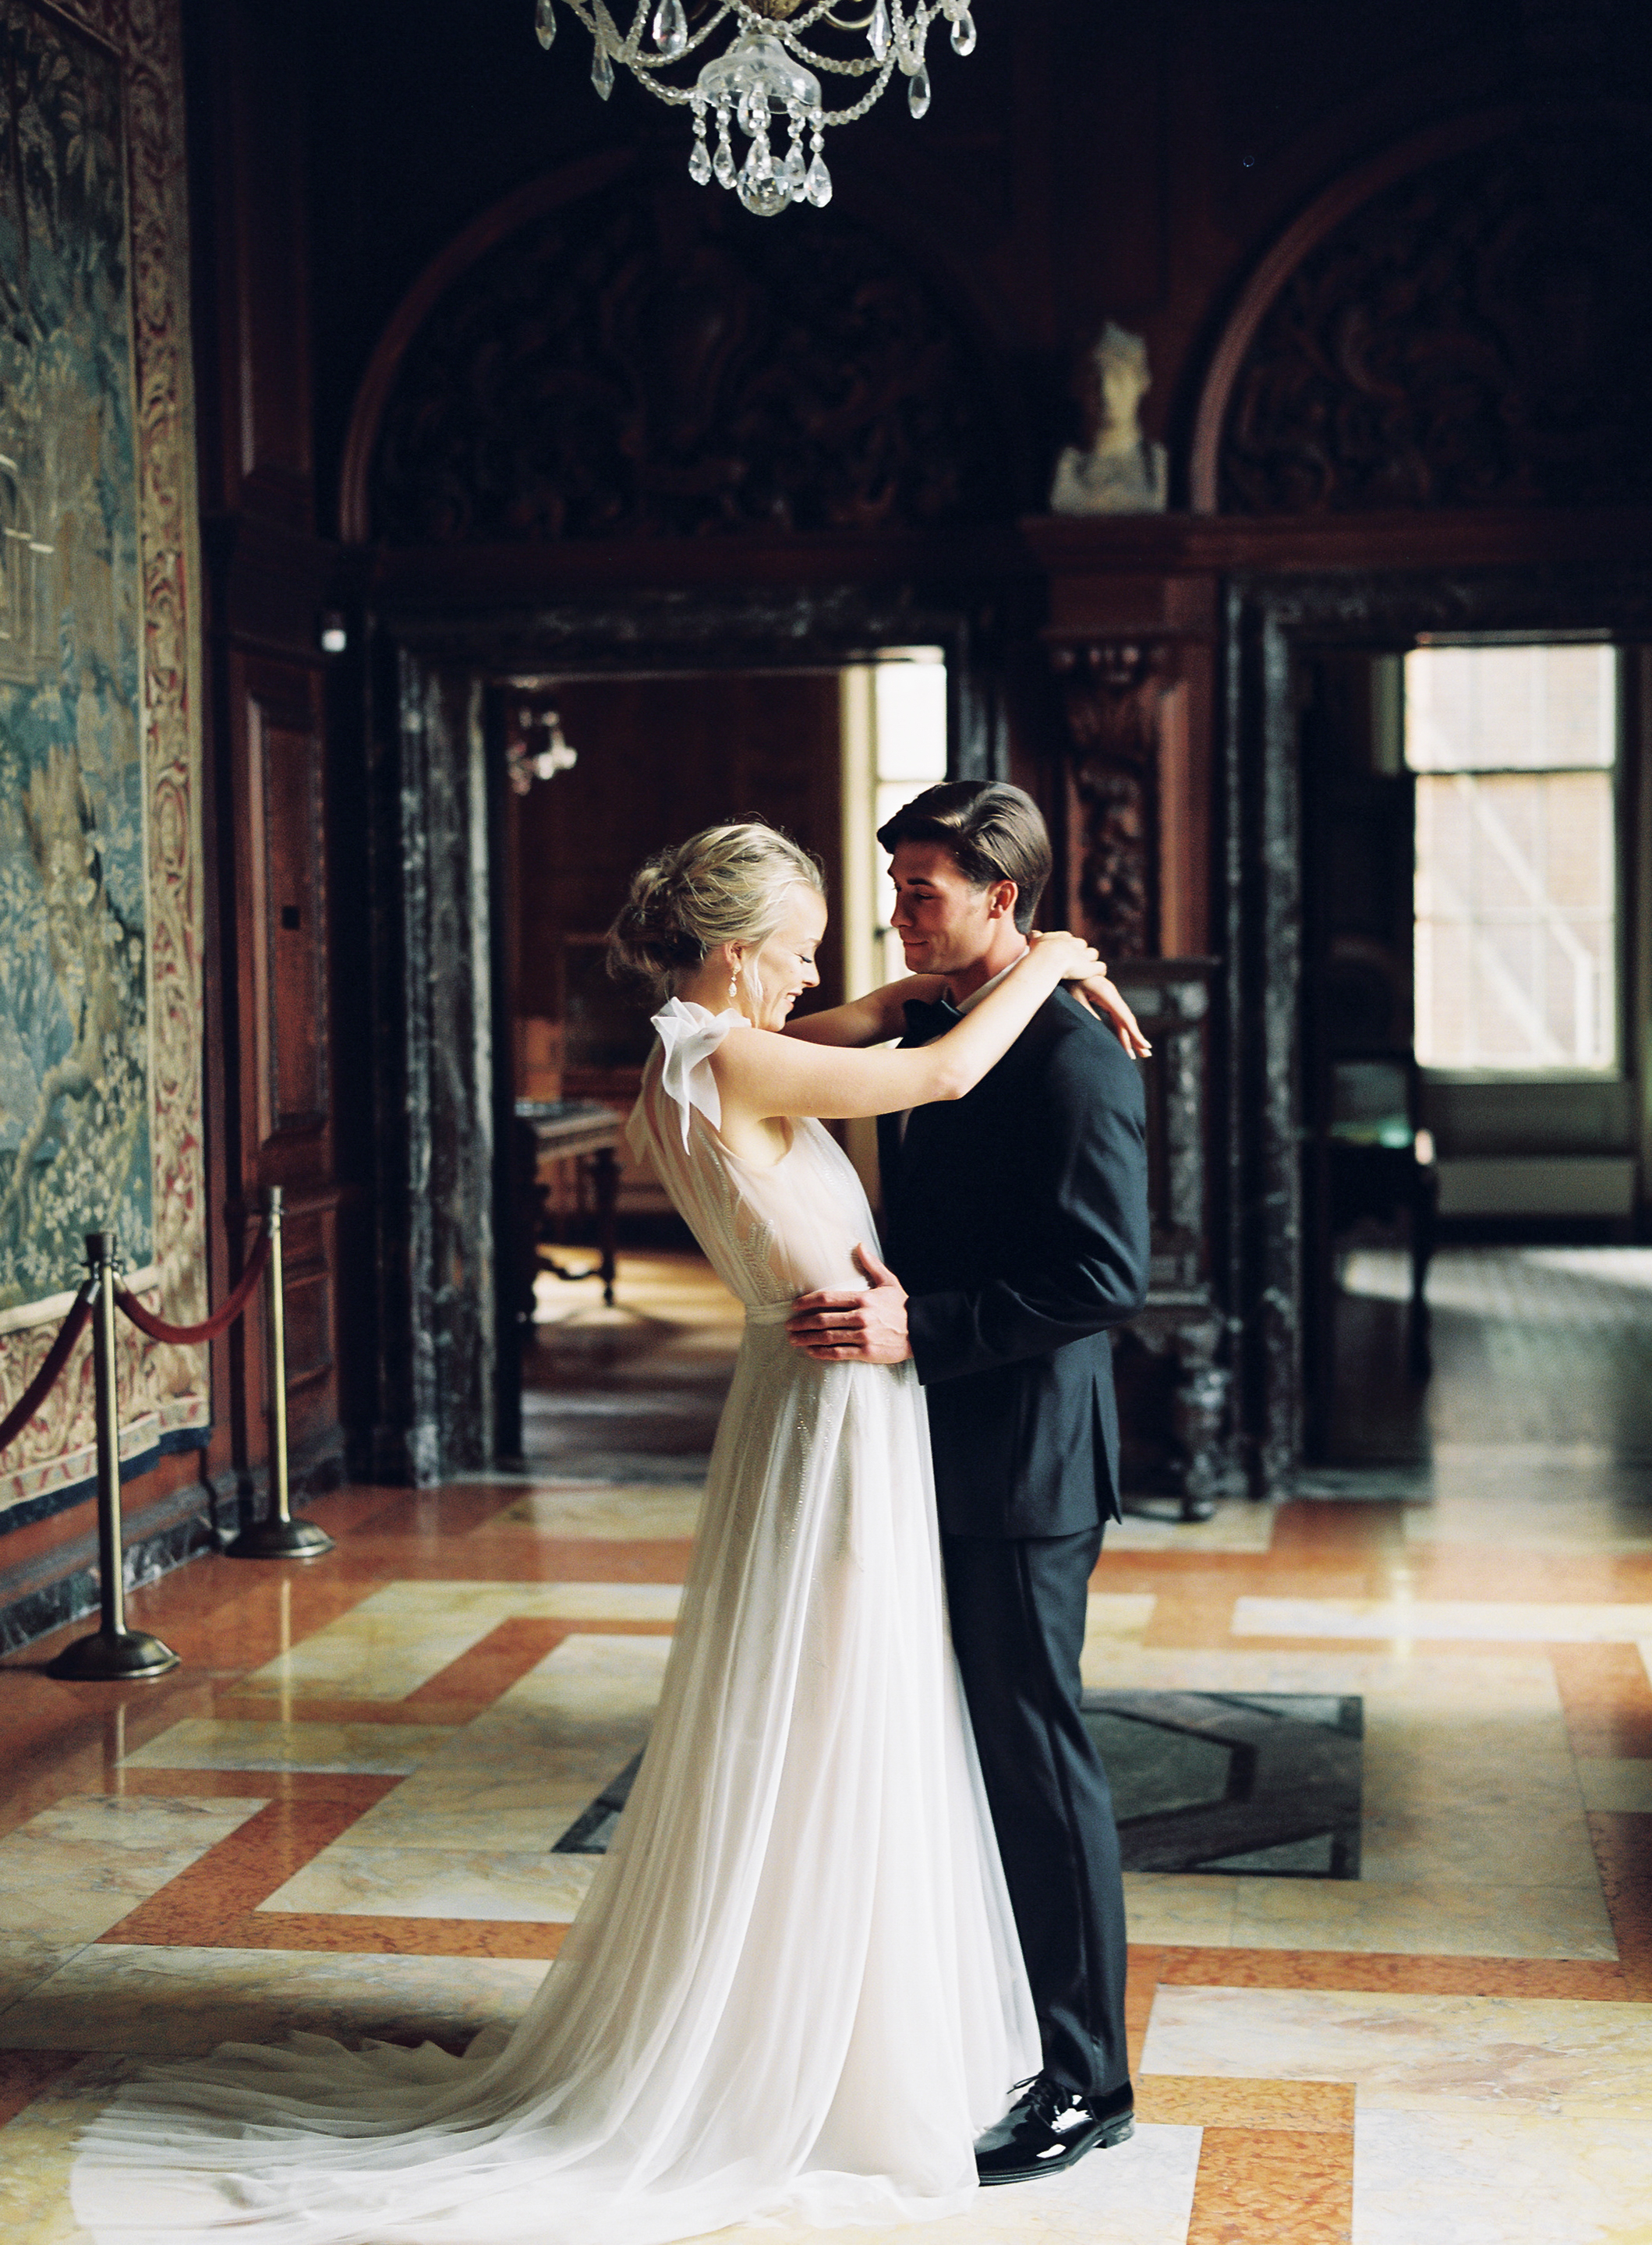 Vicki_Grafton_Photography_Anderson_House_Wedding_DC_-278.jpg